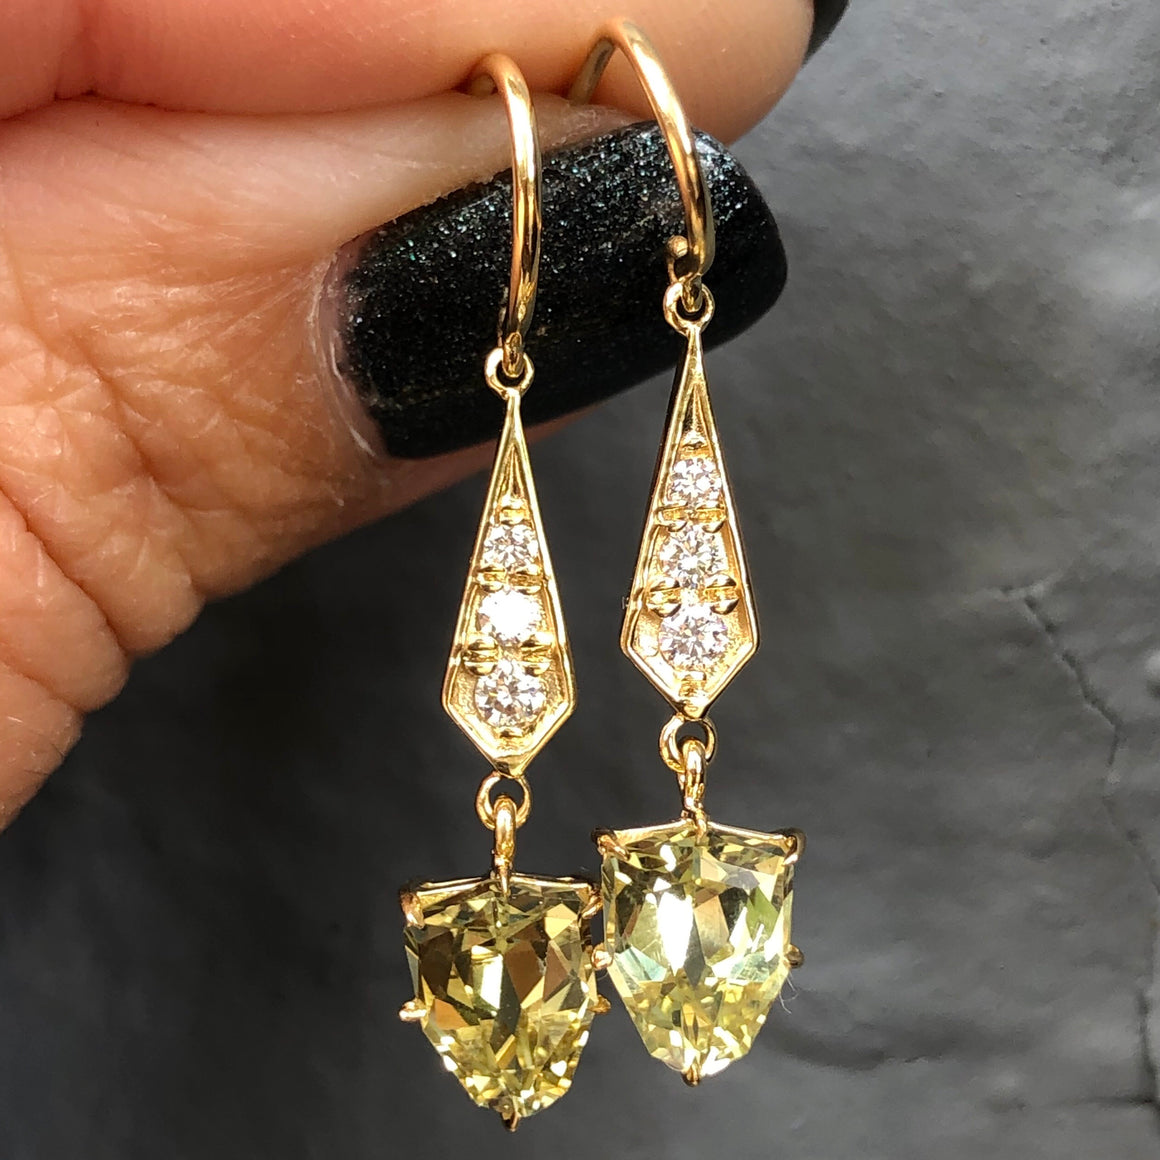 CHRYSOBERYL DIAMOND EARRINGS